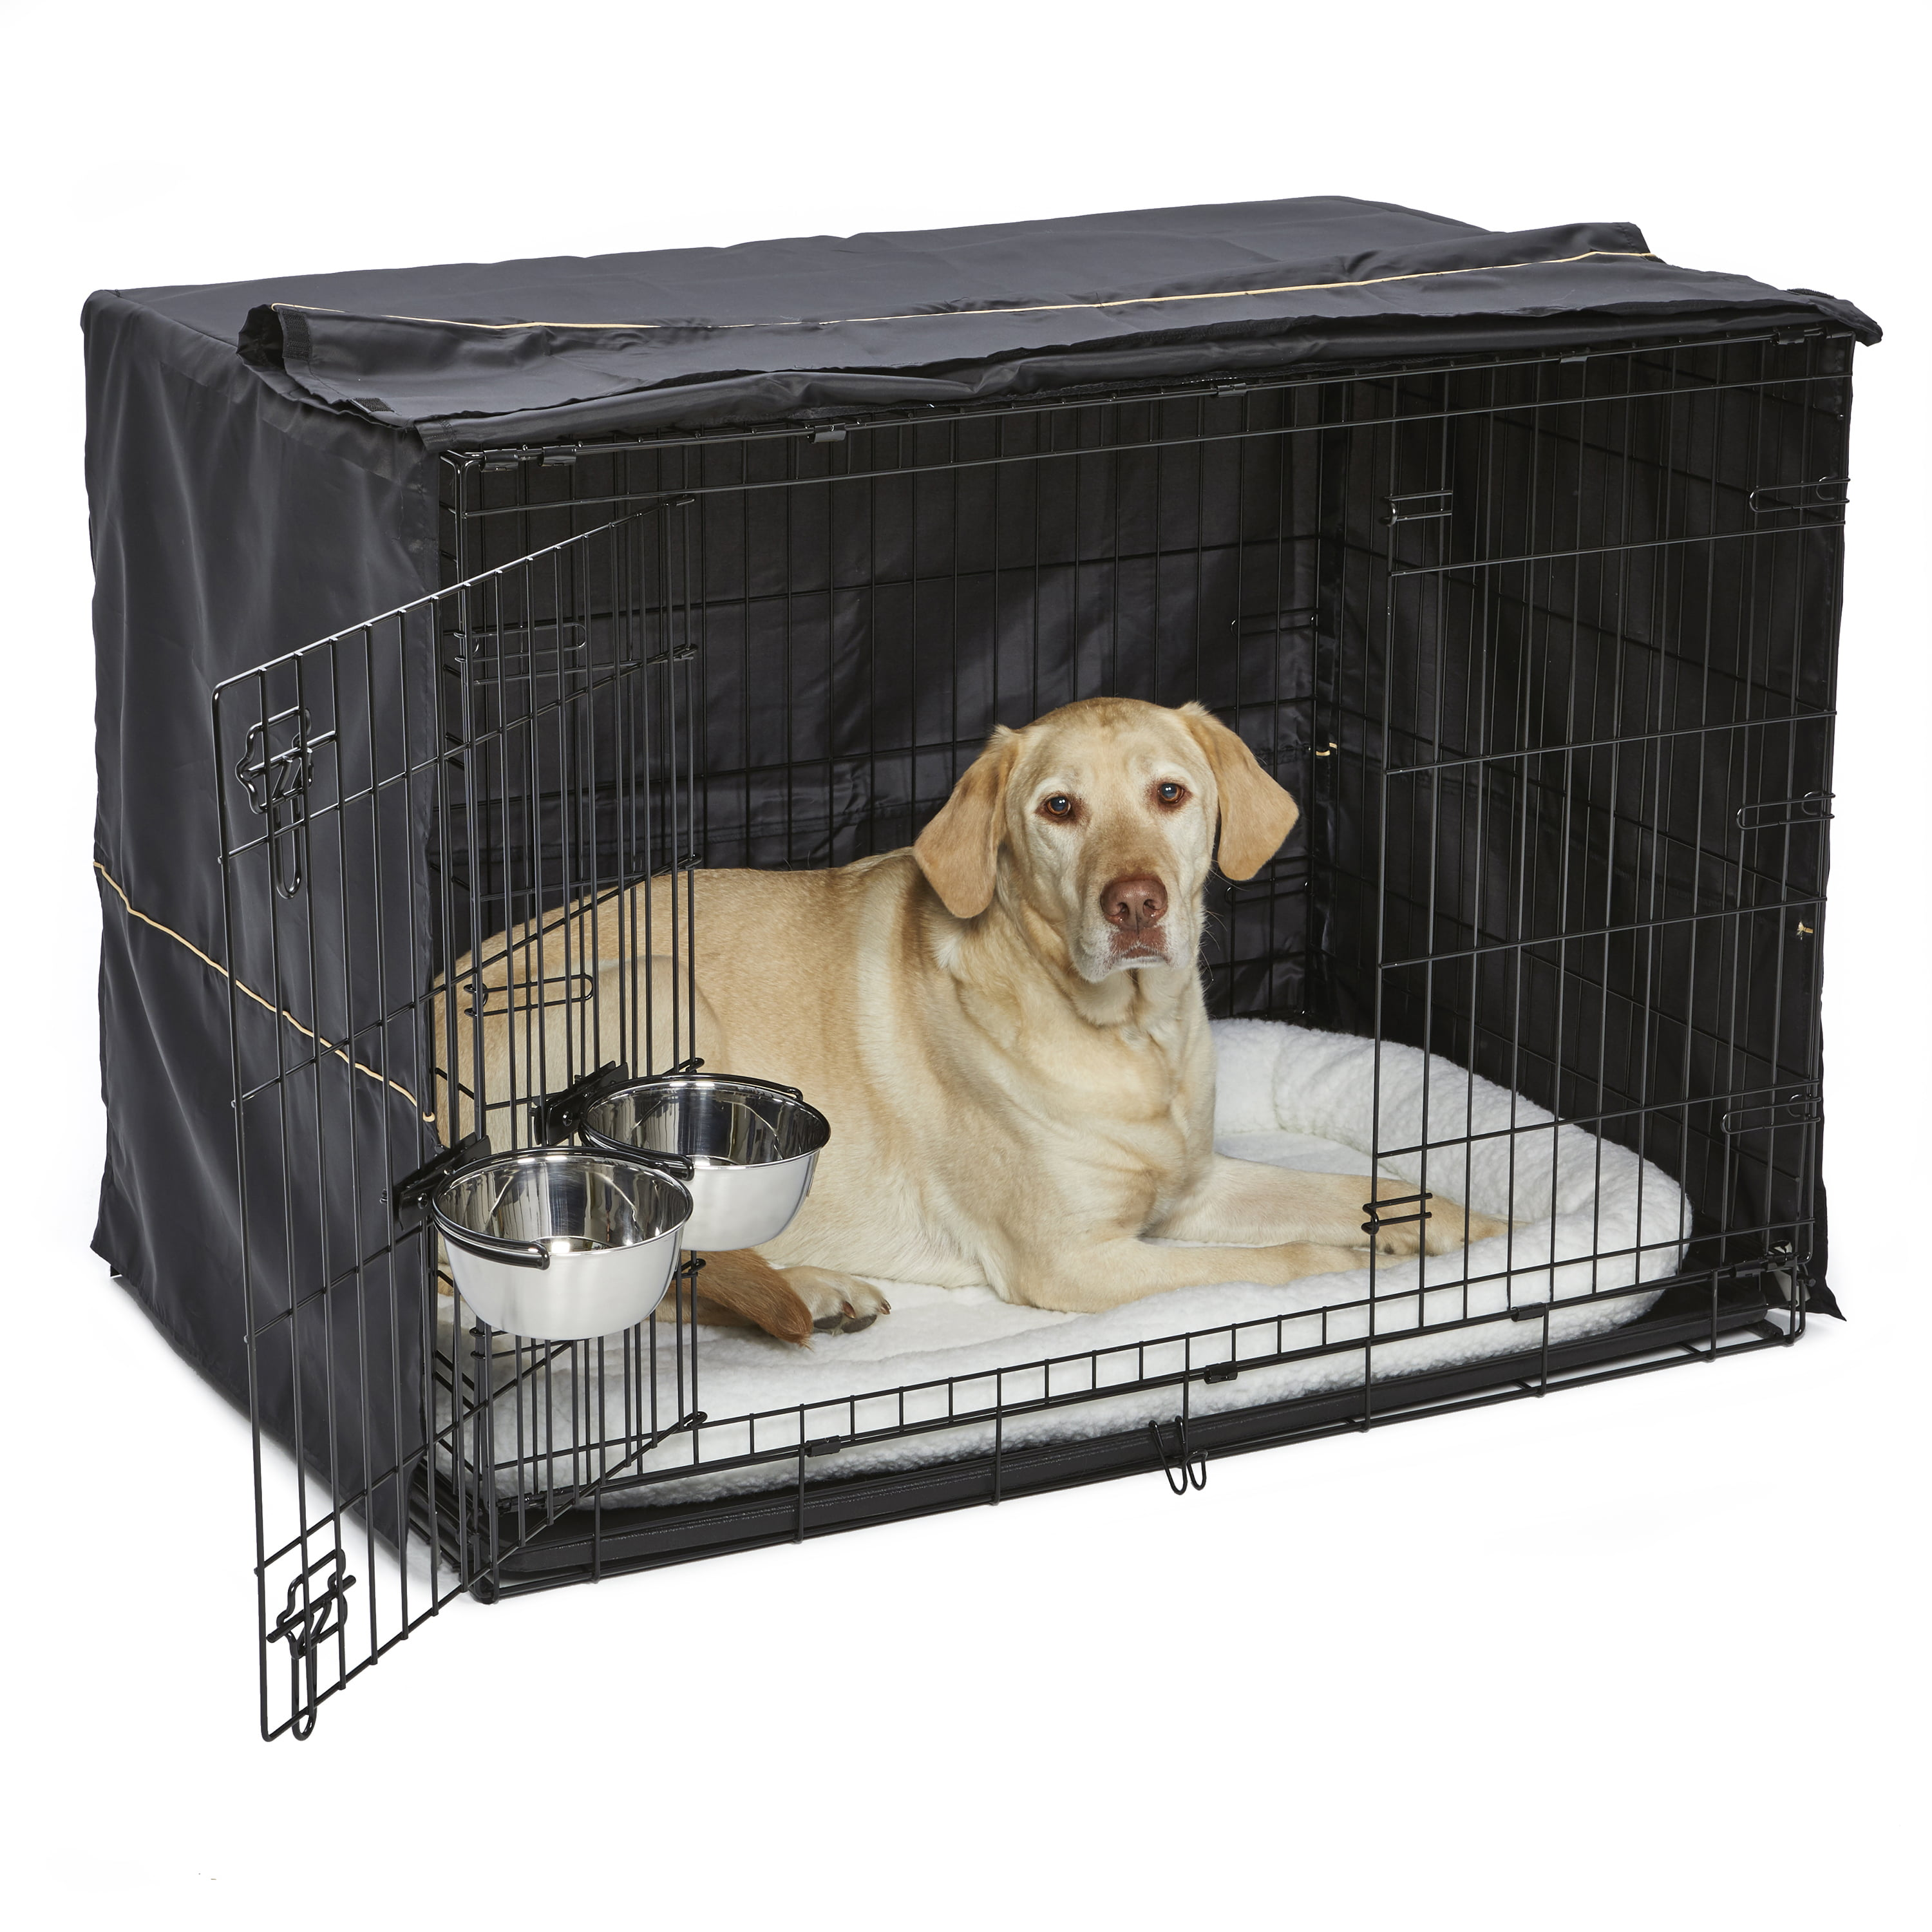 MidWest Homes for Pets Large Dog Crate Starter Kit | One 2-Door iCrate, Pet Bed, Crate Cover & 2 Pet Bowls |... by Mid-West Metal Prodcuts, Inc.